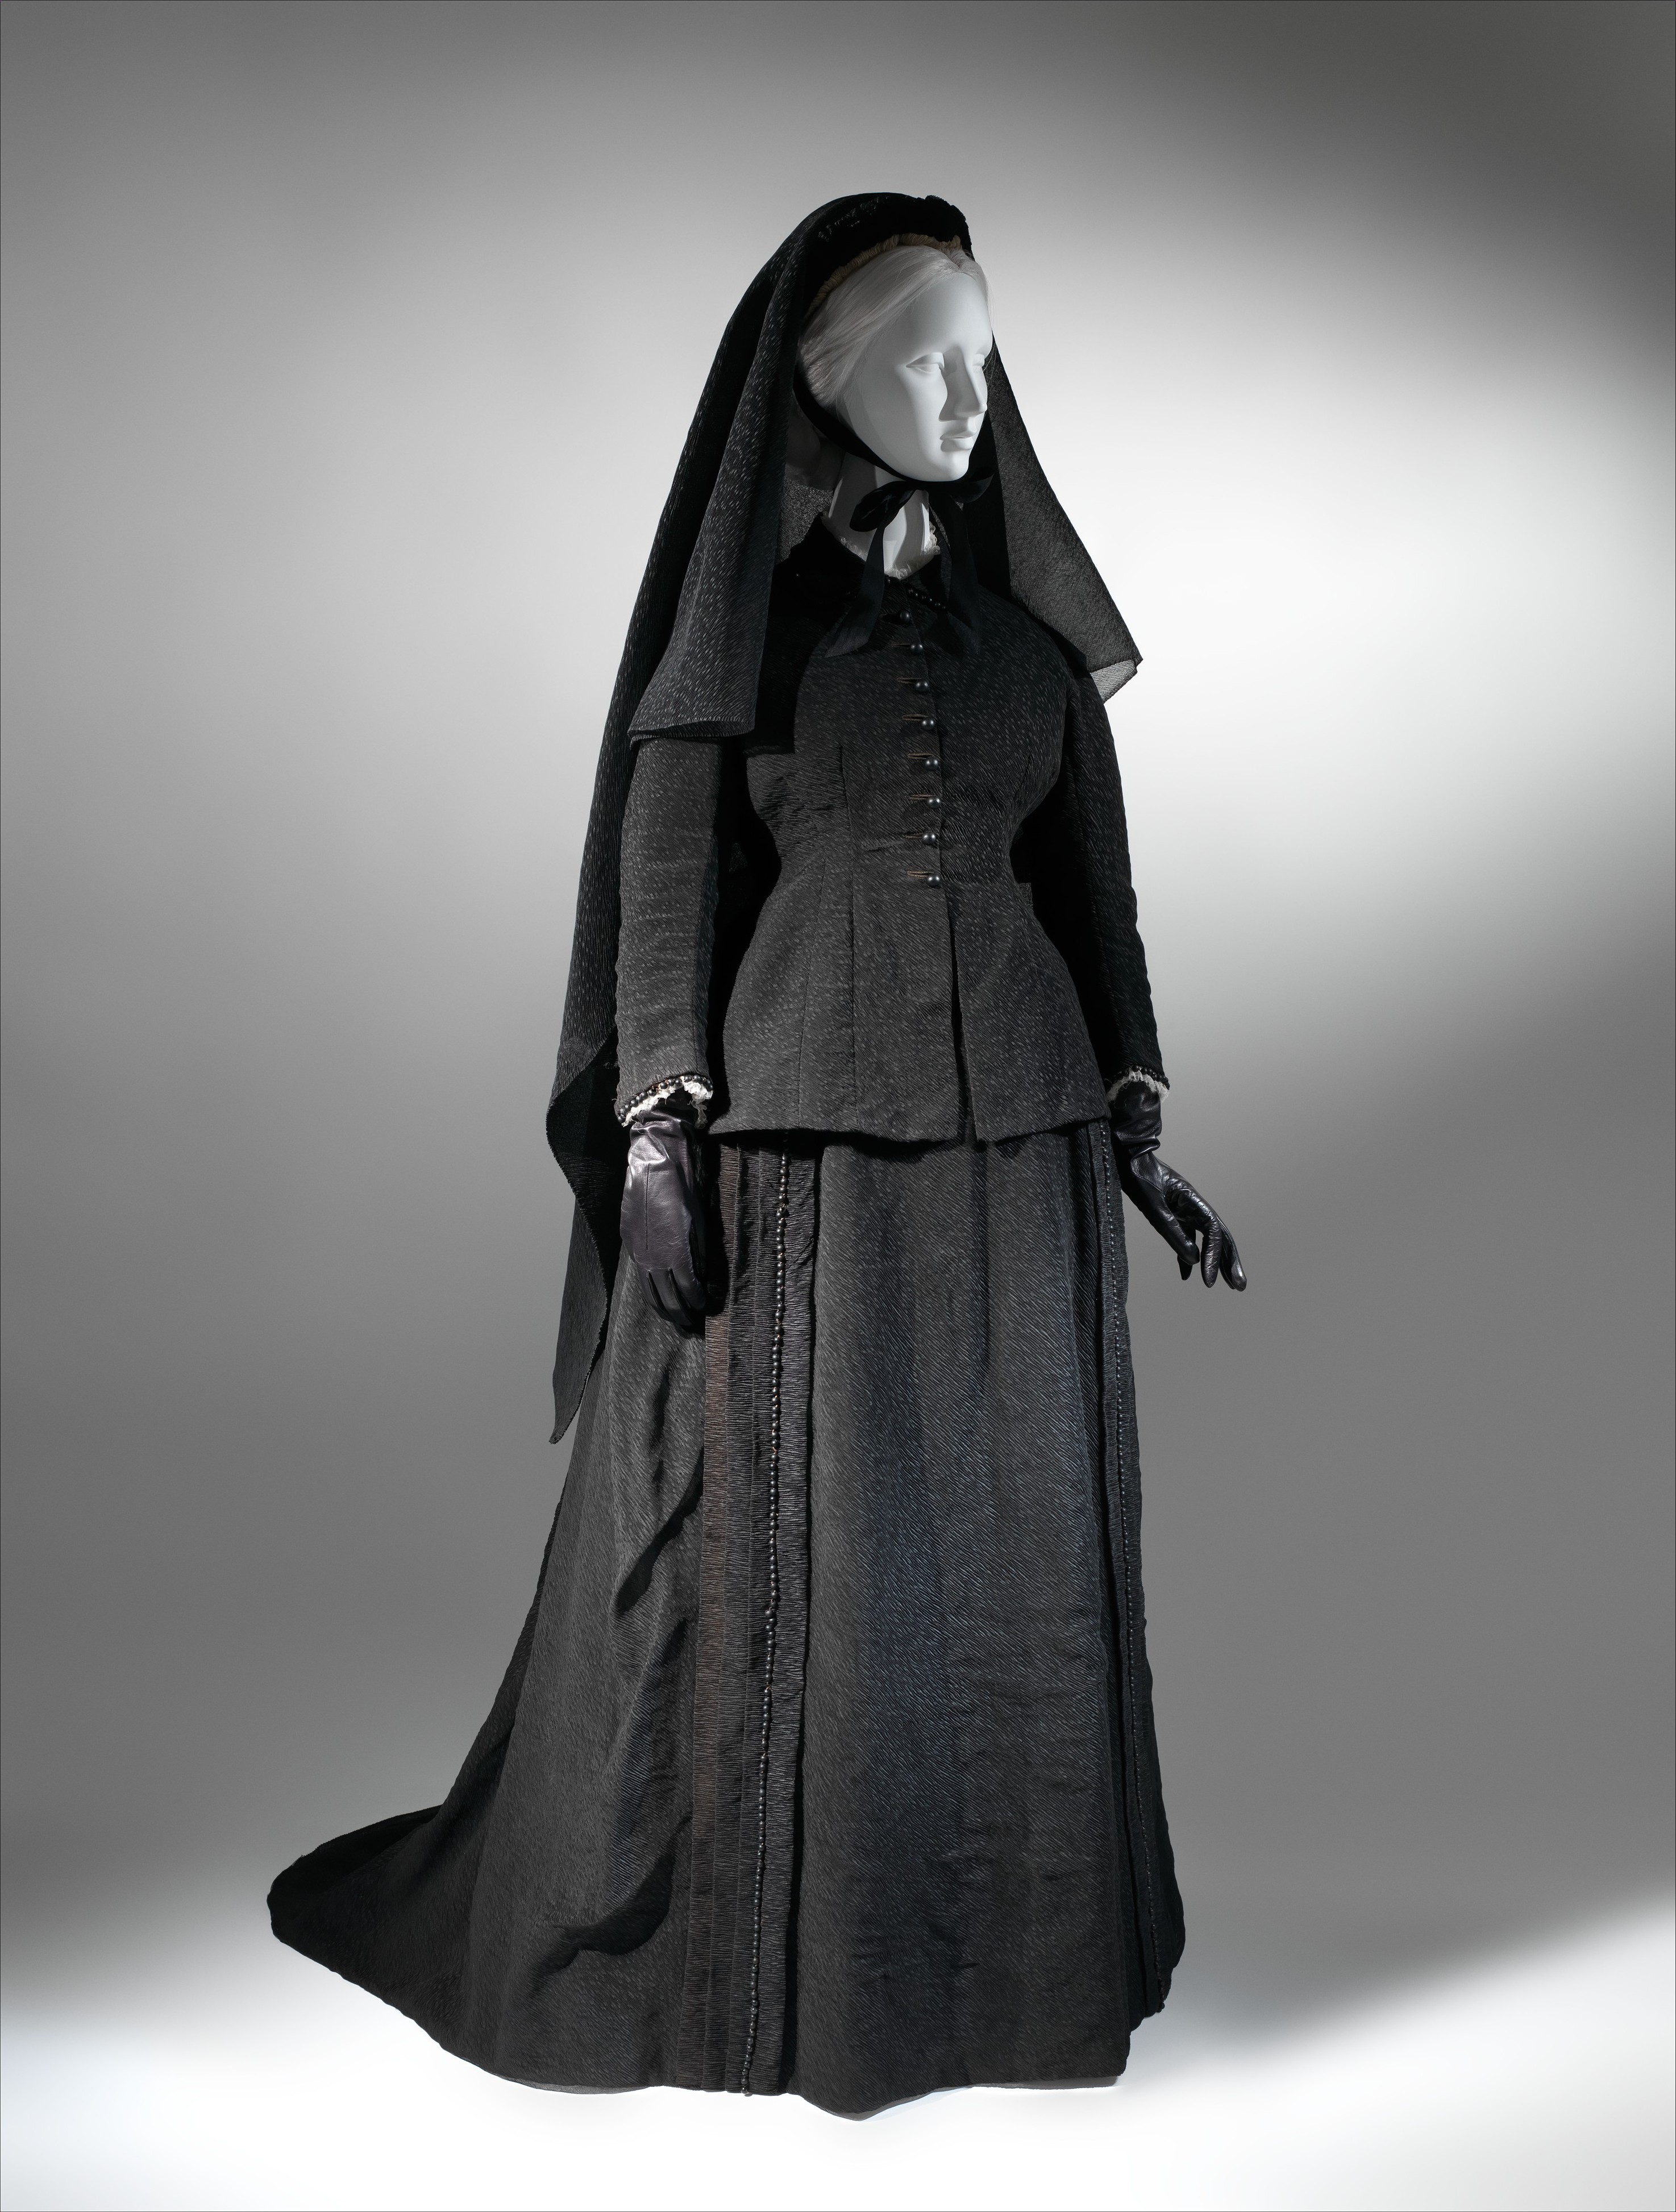 Mourning dress, silk, glass, French